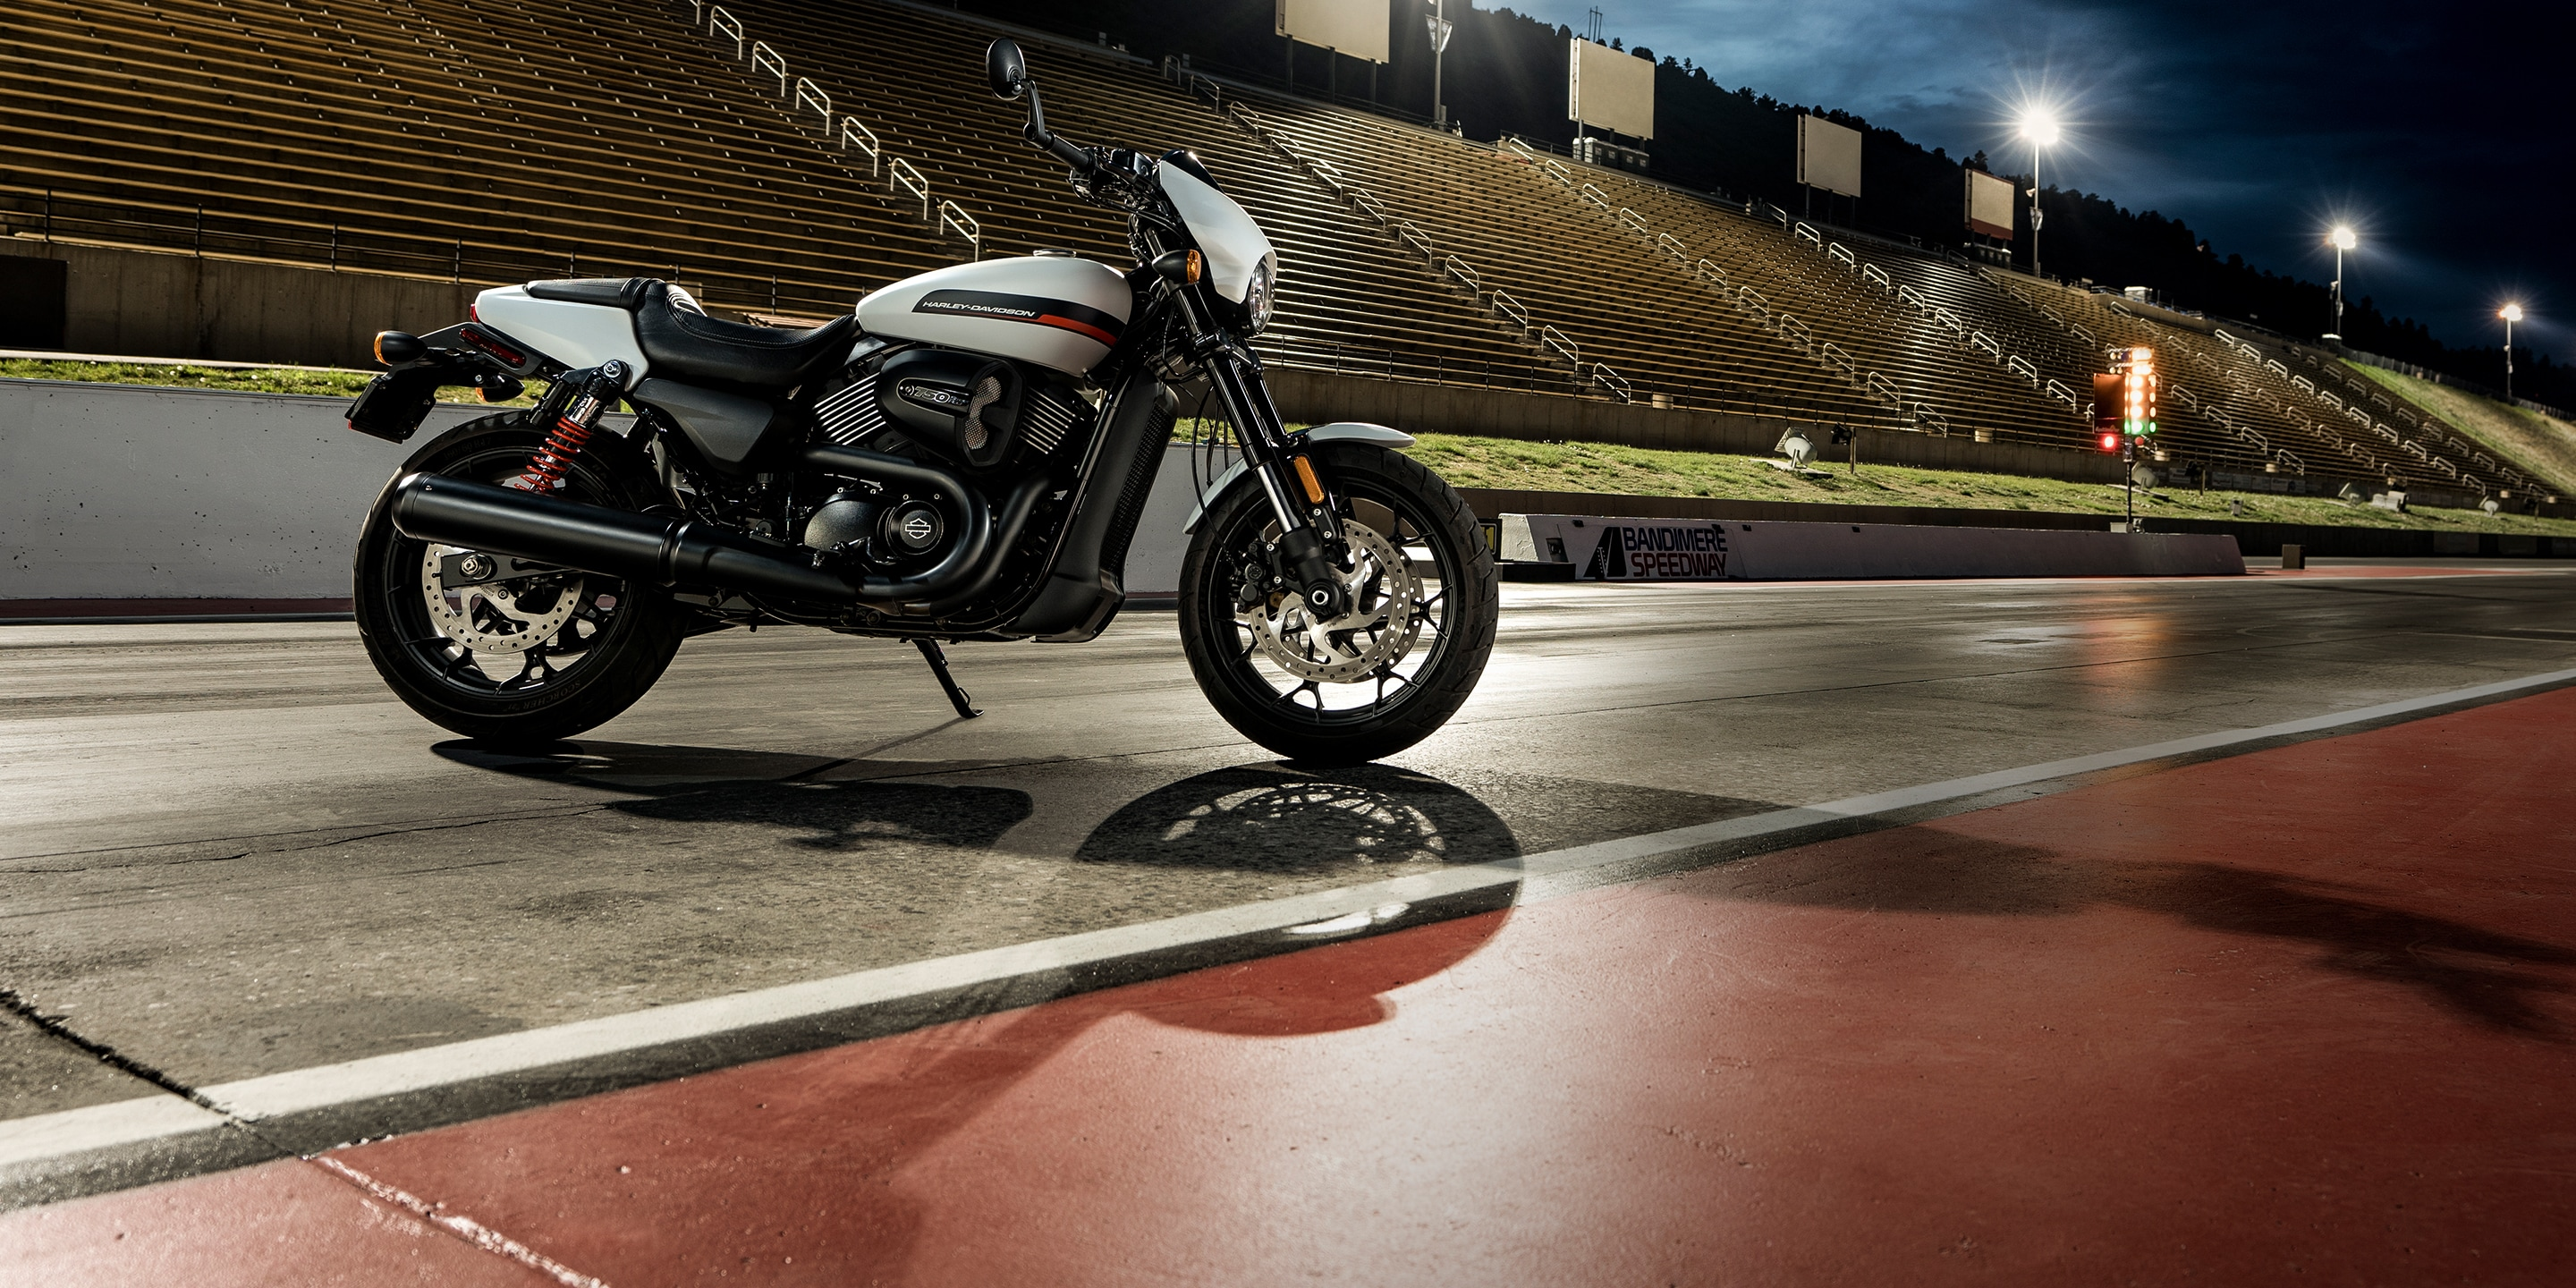 2019 H-D Street Motorcycle parked on a race track